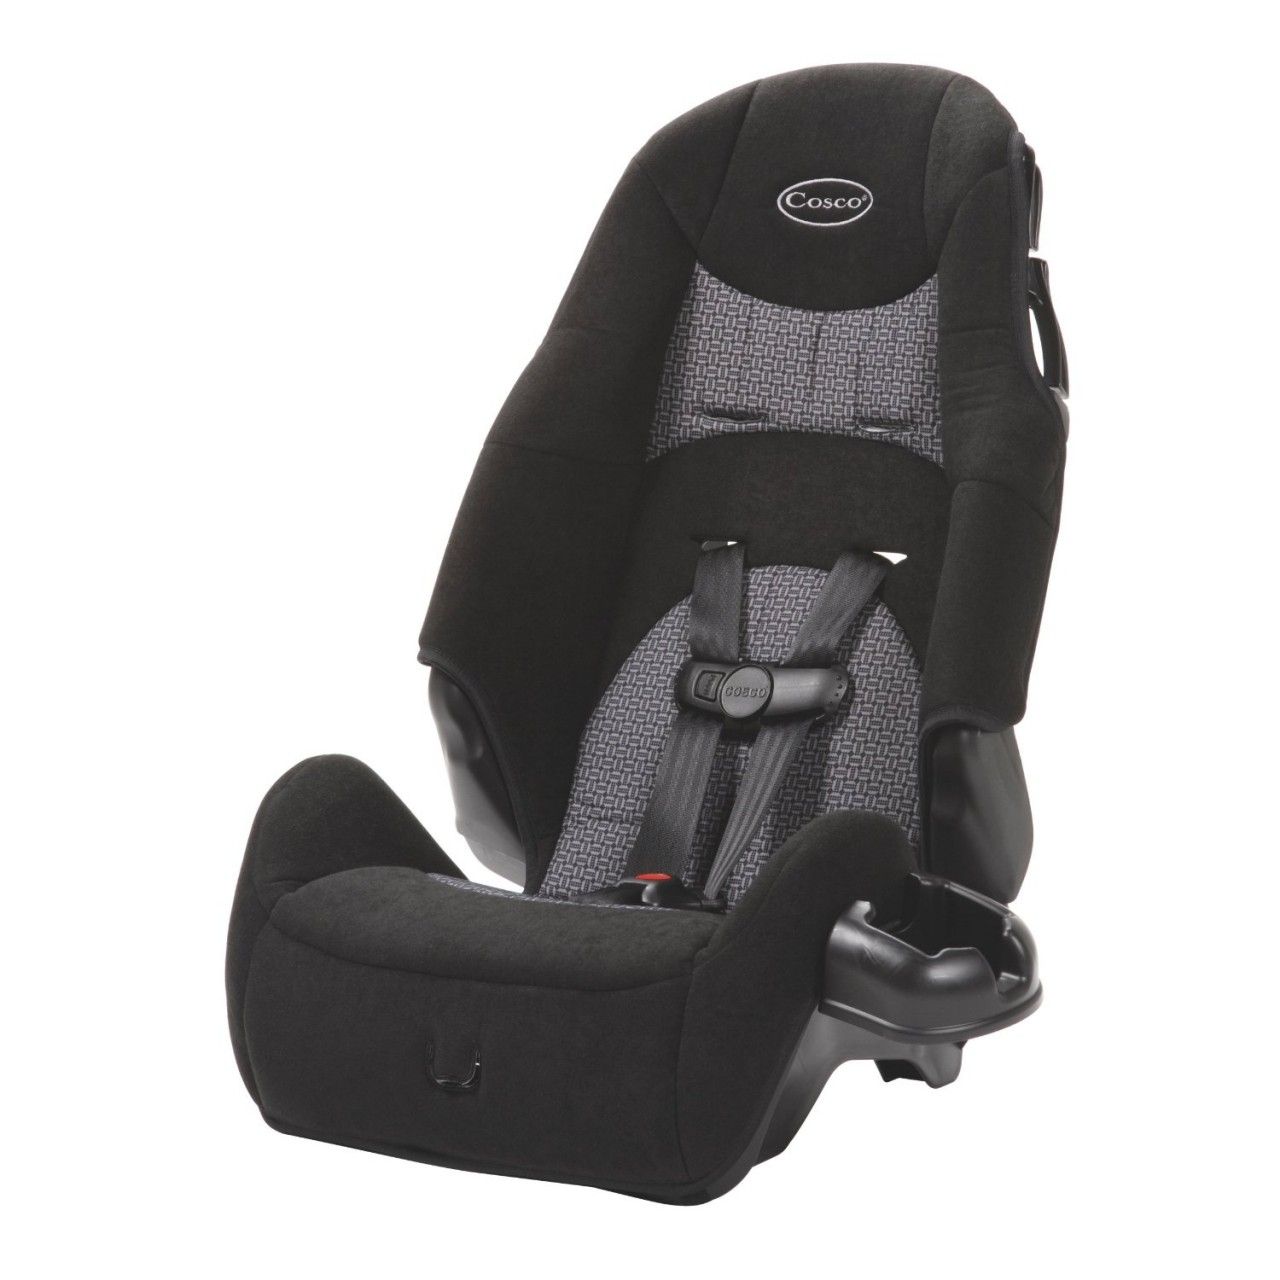 Cosco Alpha Omega Car Seat Cover Replacement